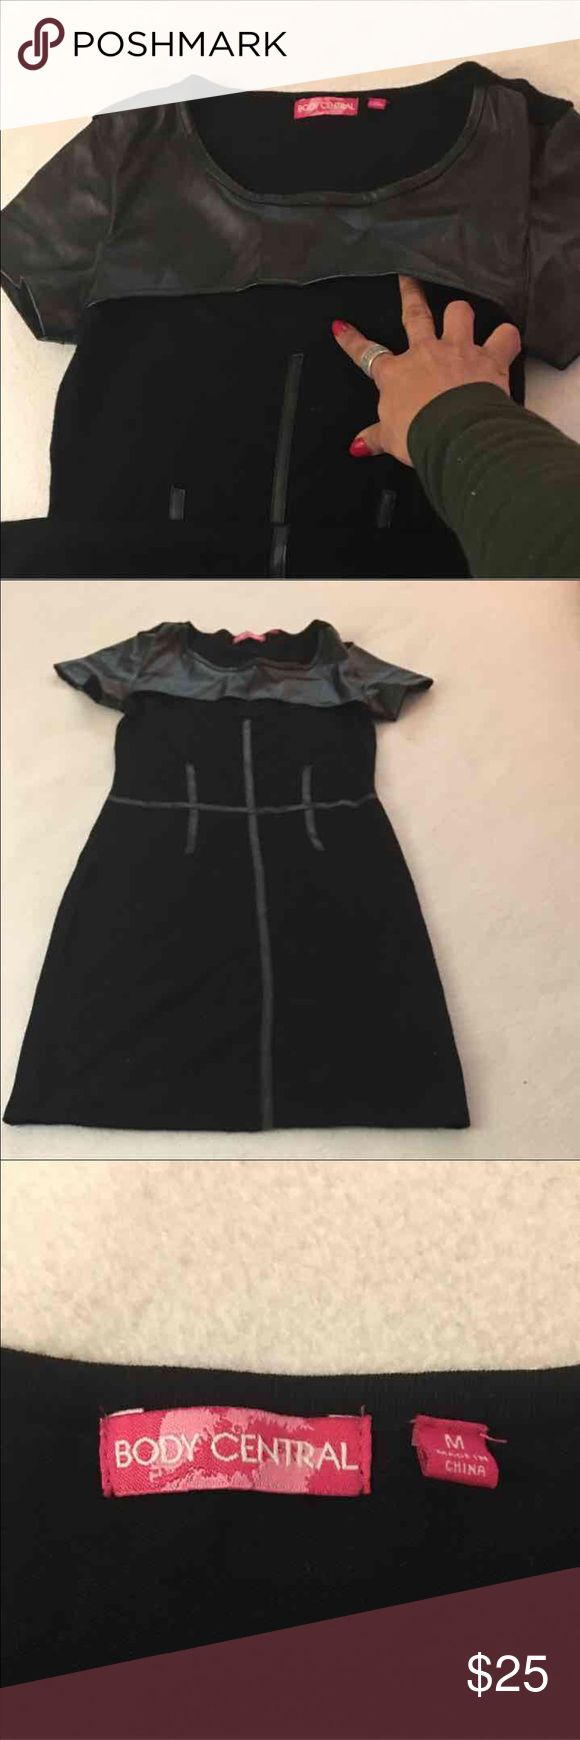 Modern black dress NWOT This dress is a modern NWOT dress from brand Body Central. The brand is known for their style and clothes that fit the body well. Stretchy Body Central Dresses